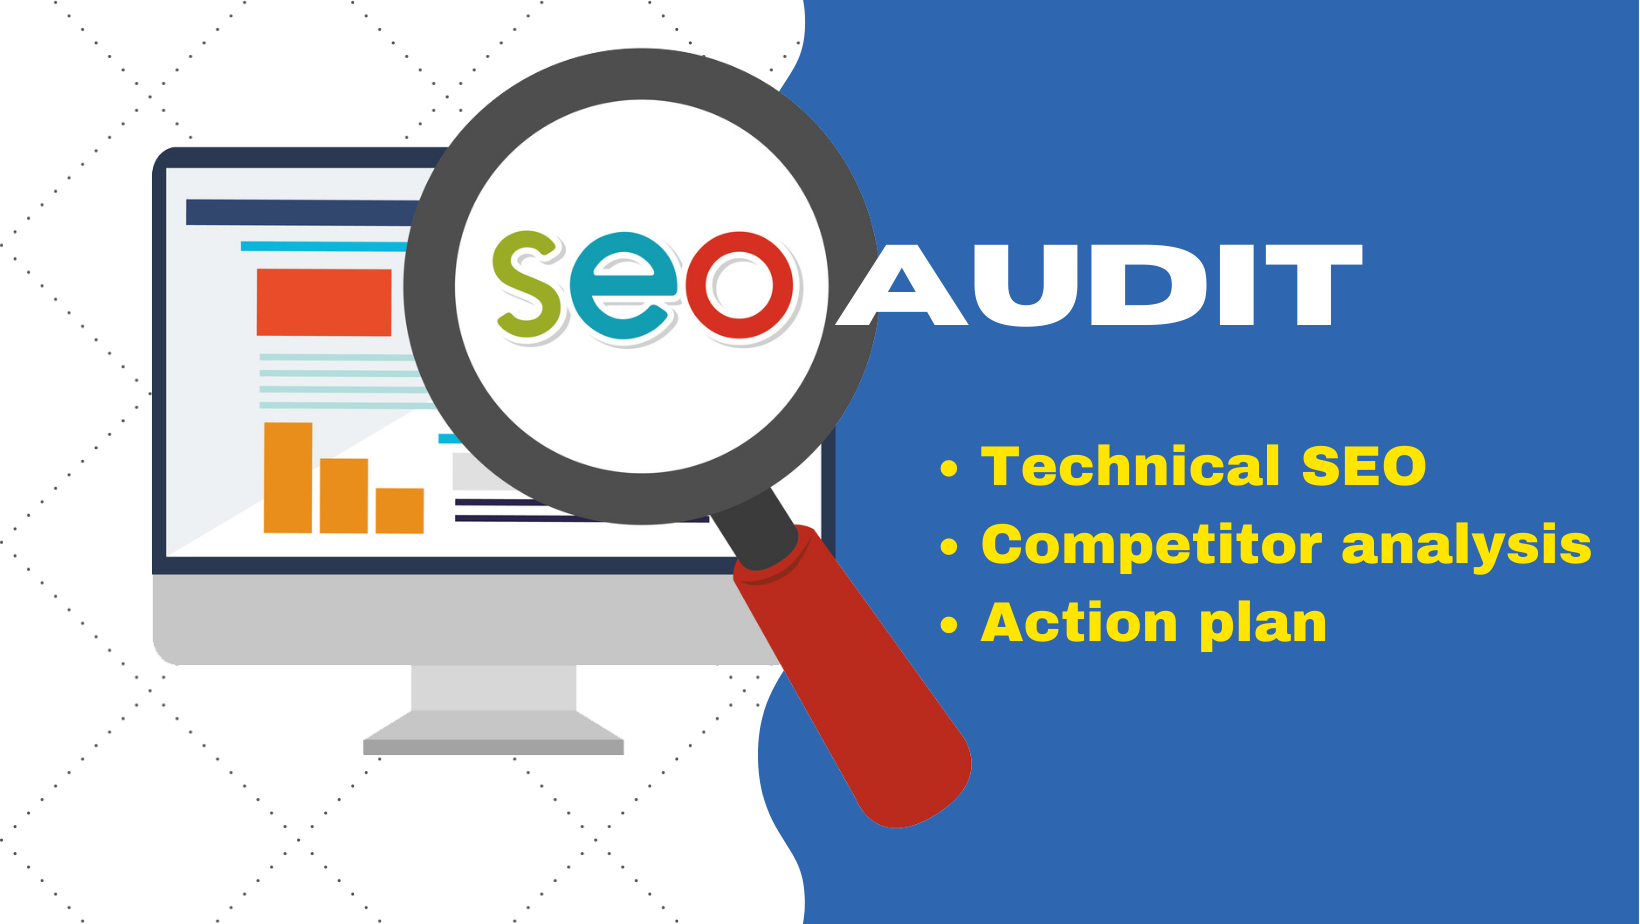 I will do a pro technical seo audit with competitor analysis and action plan